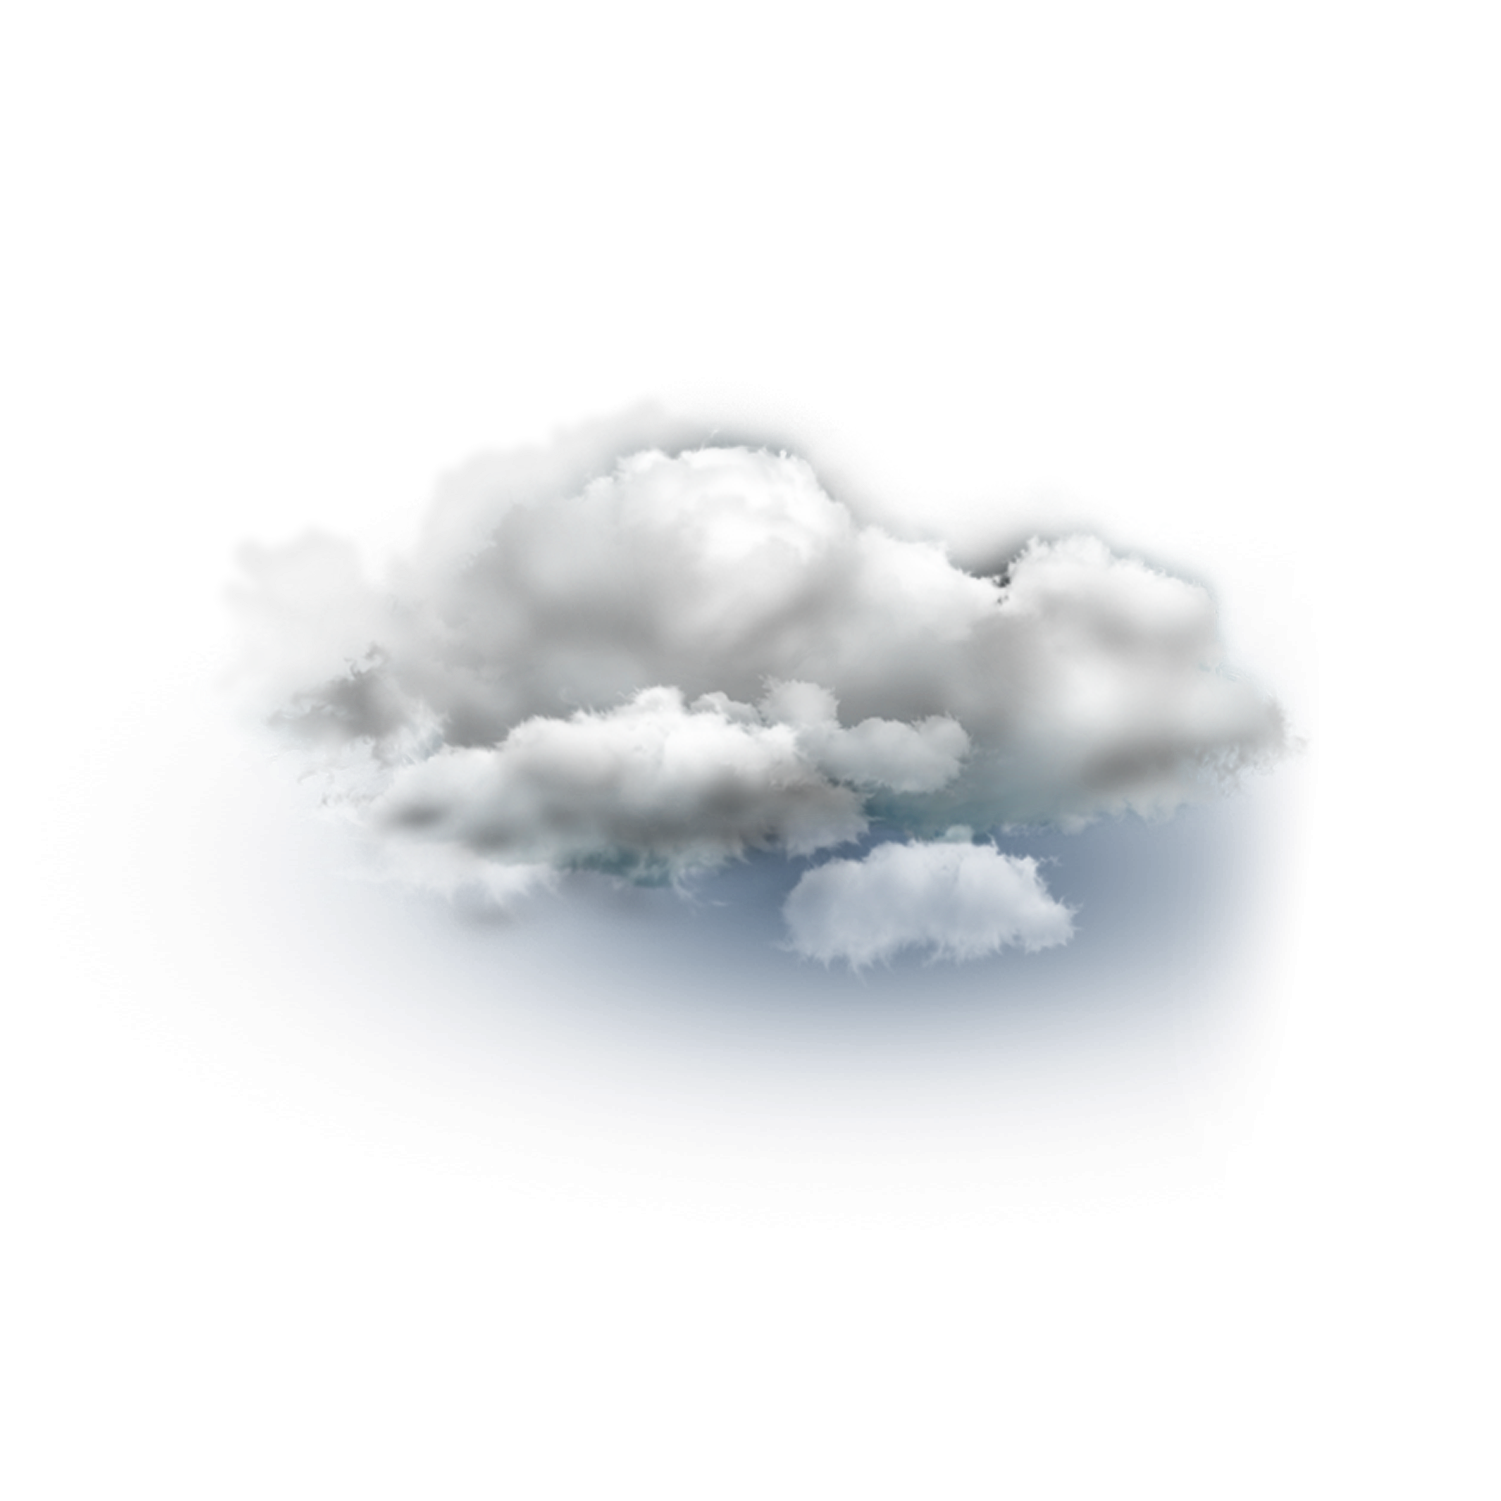 Cloud Png Image Cloud Png Transparent Free Download Image Cloud Clouds Png